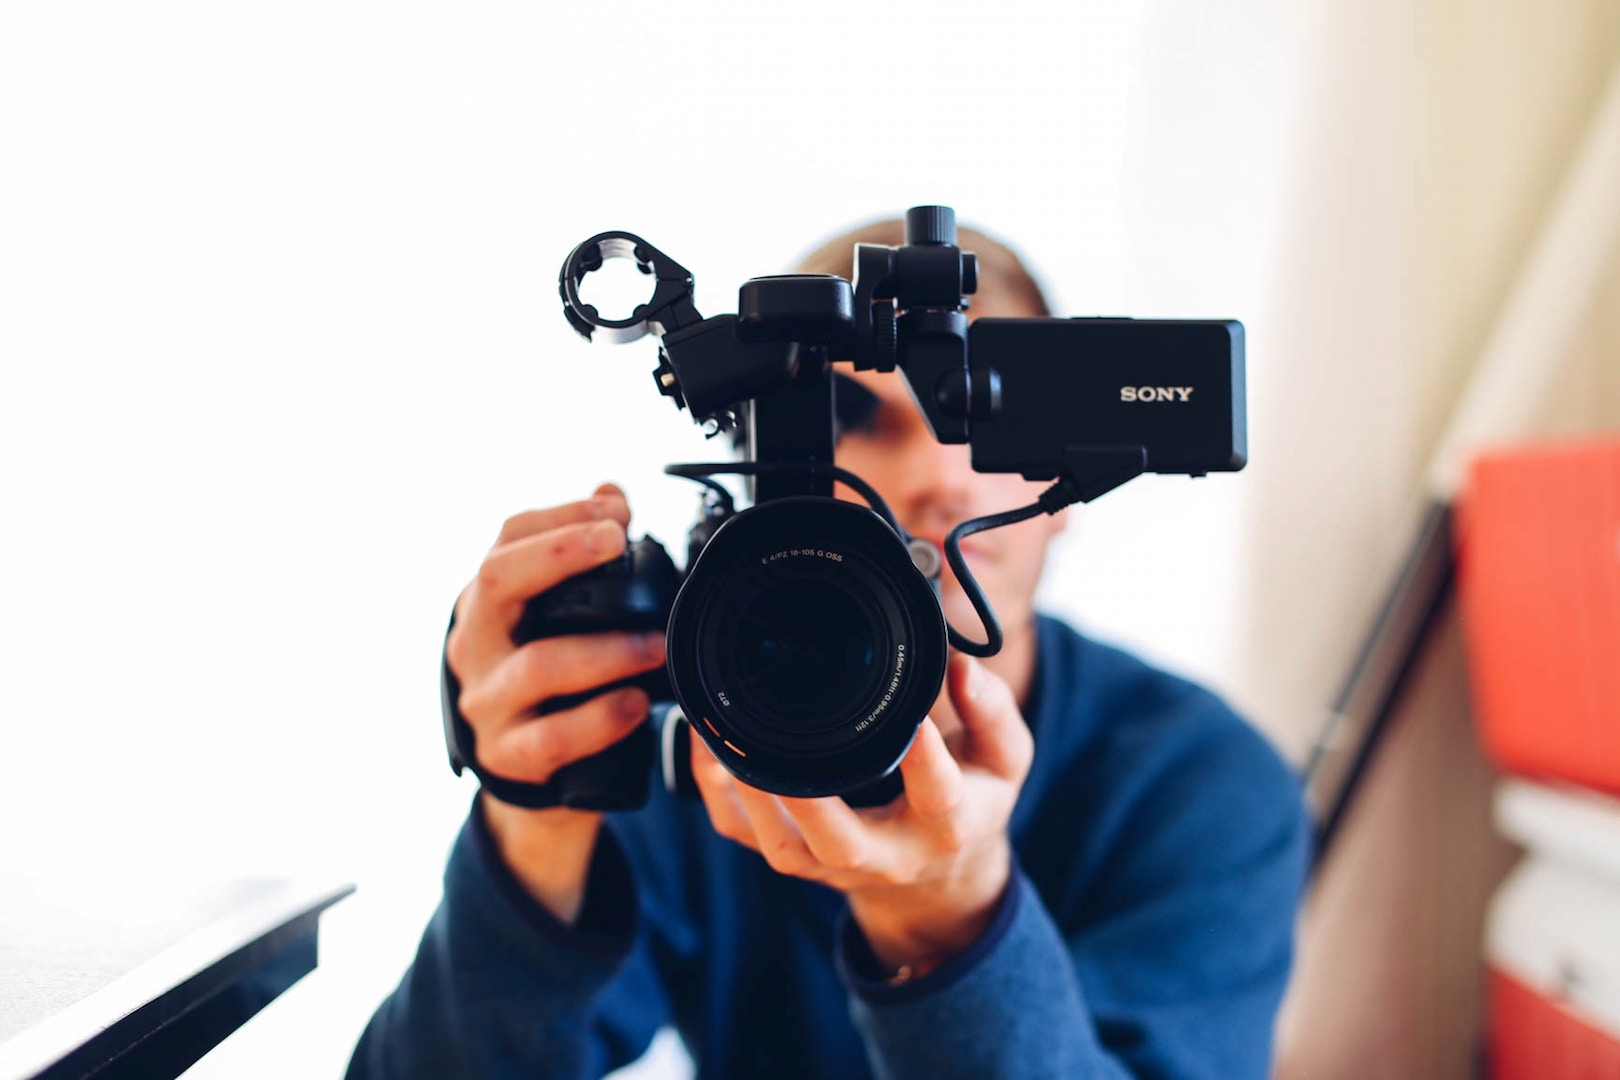 Types Of Video Content To Guide The Buyers Journey - YFS Magazine